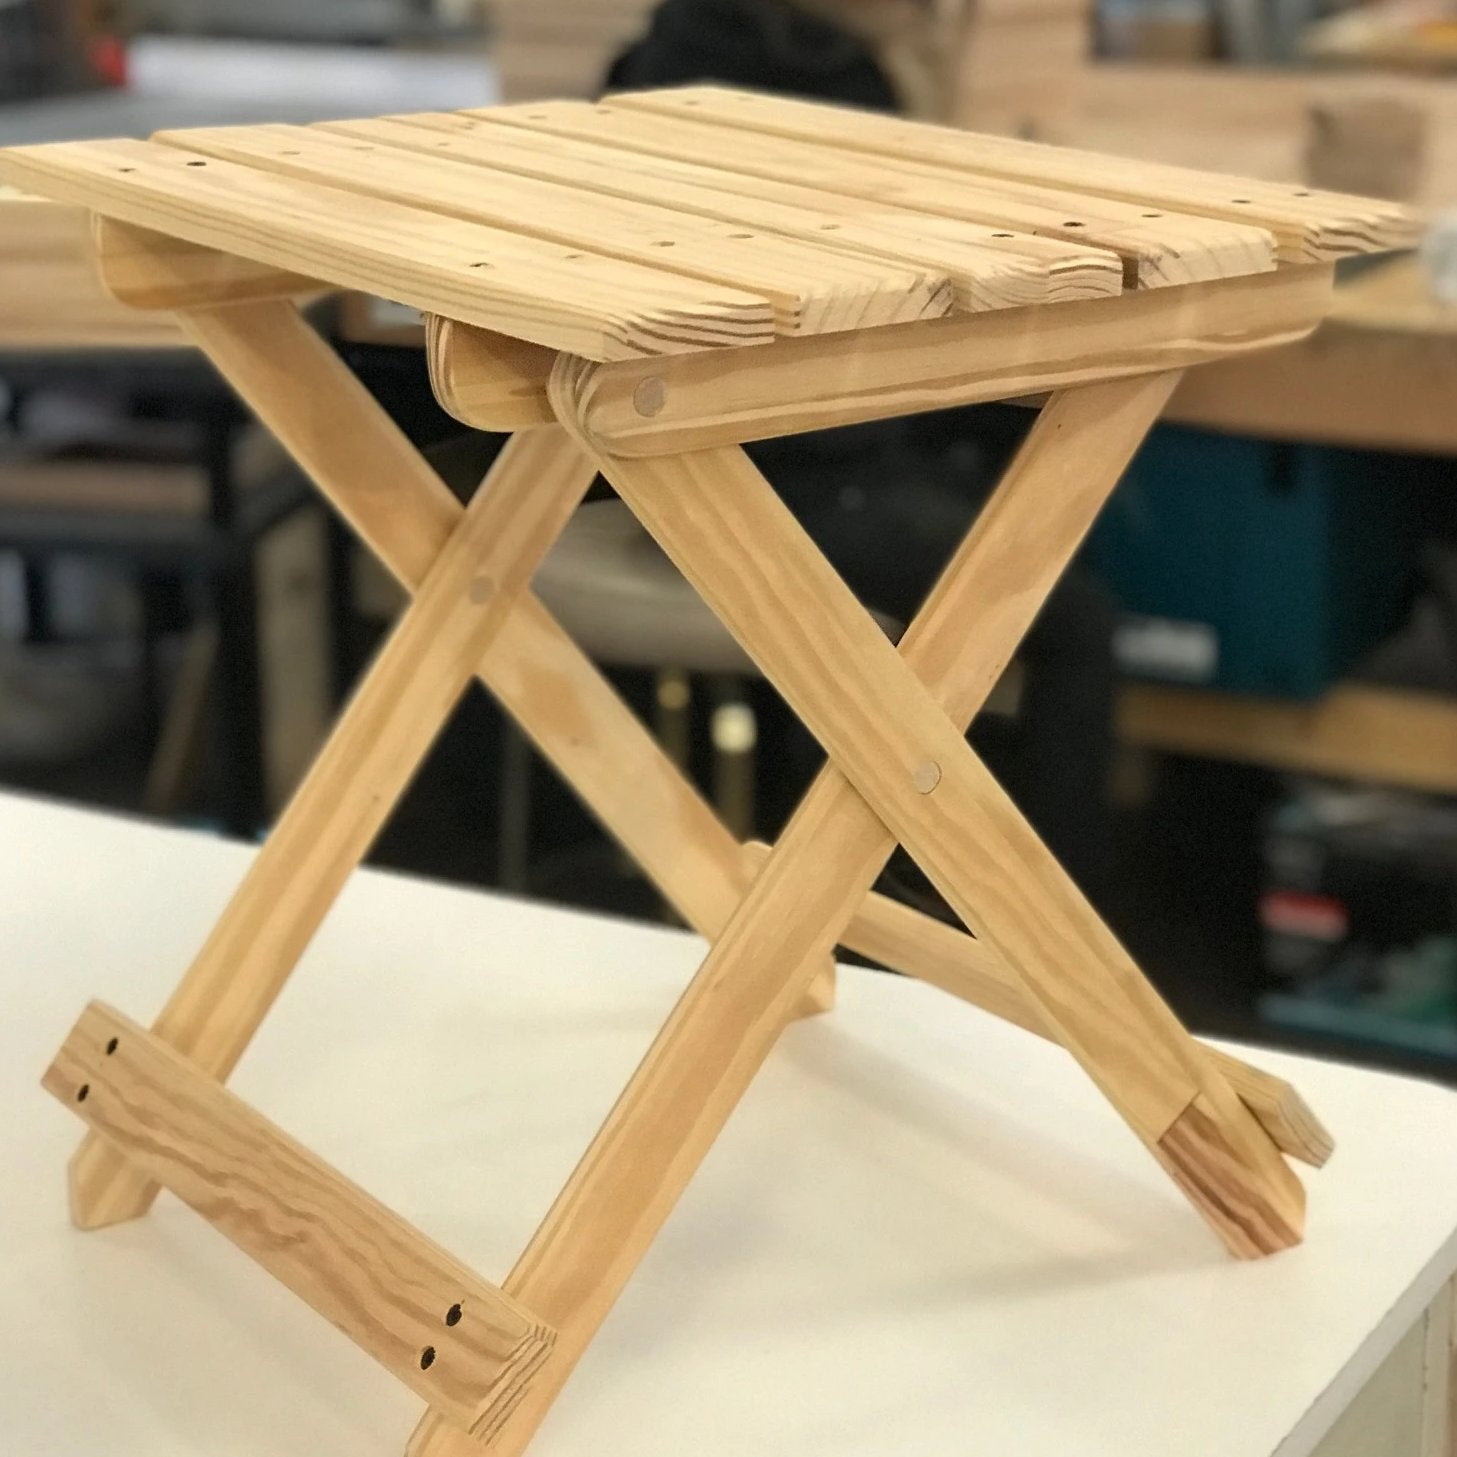 05/24 Woodworking Workshop: Folding Adirondack Table on Sunday May 24 at 10am